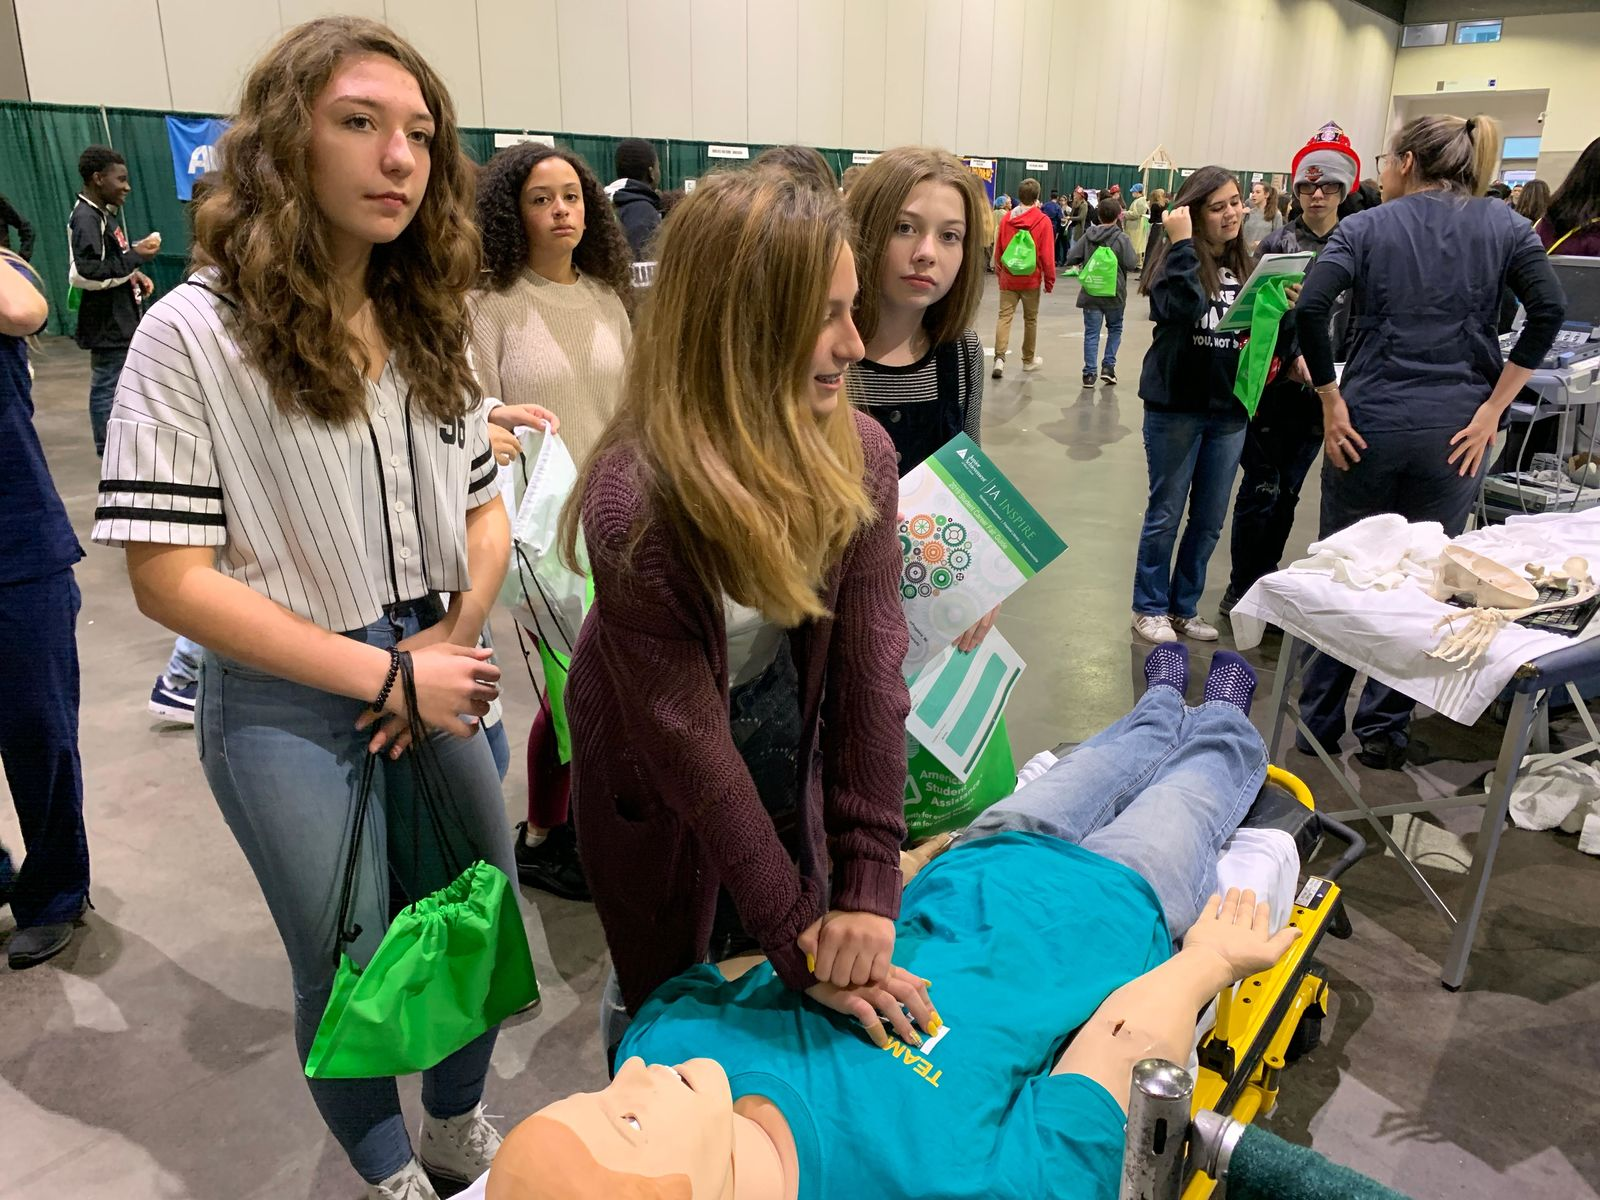 Sophia Schmitt, a student at Warwick Vets Middle School, stopped at the Lifespan exhibit to practice CPR. (WJAR)